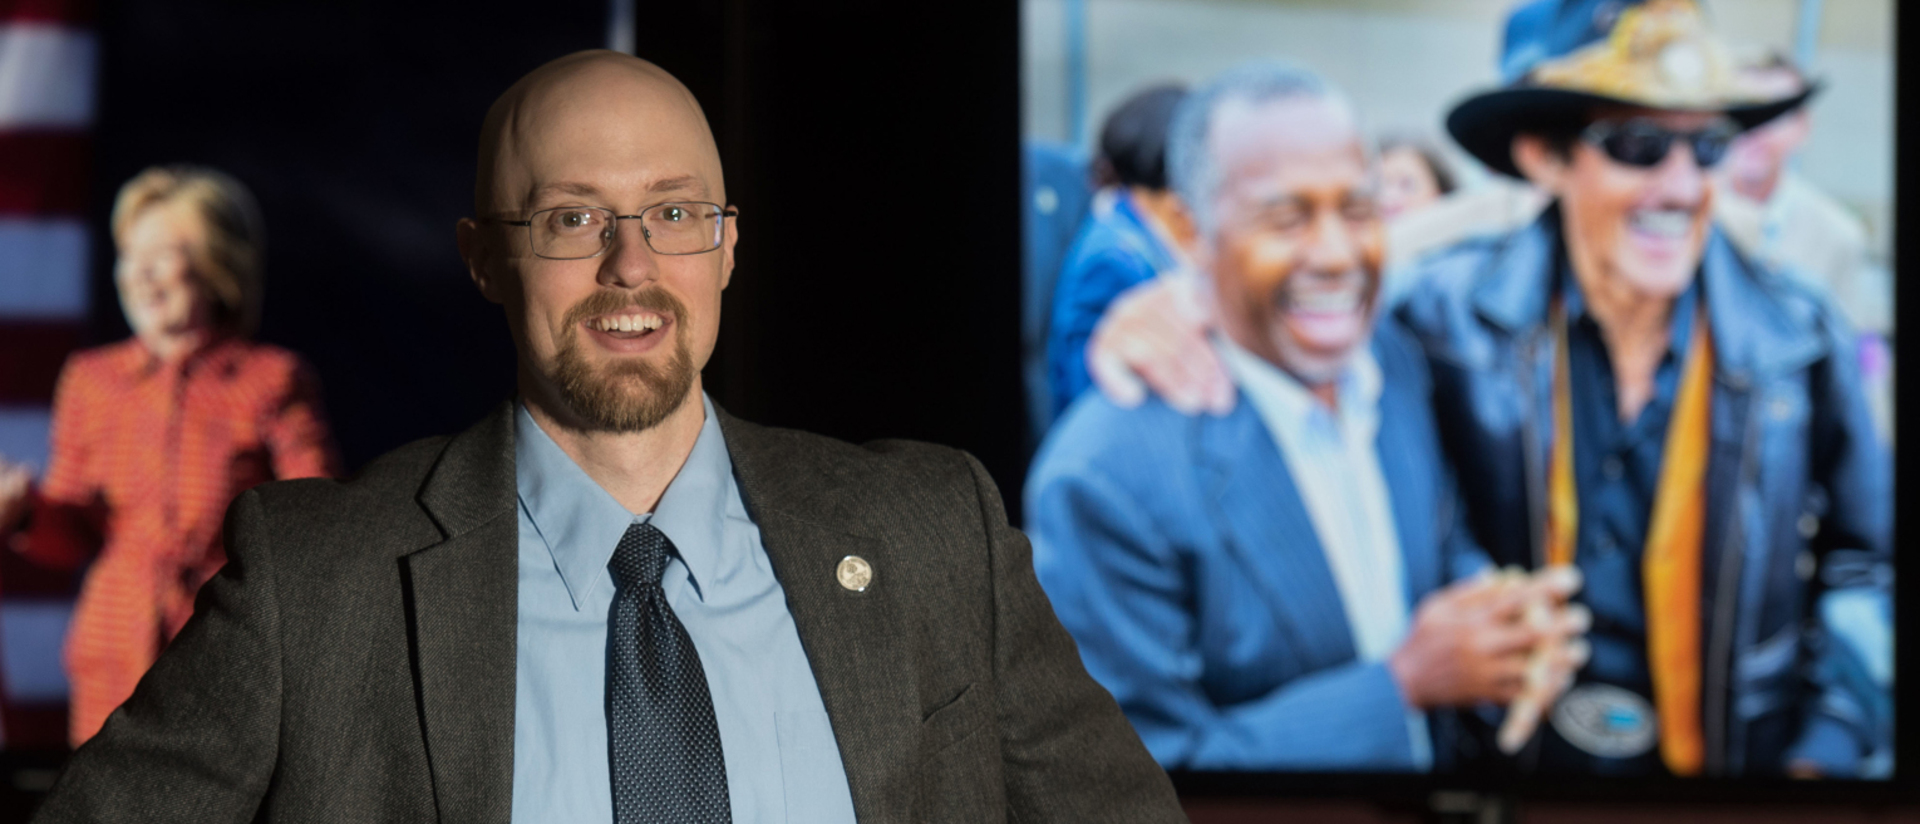 Professor Gaining National Attention For Research On How Politics And Pop Culture Connect